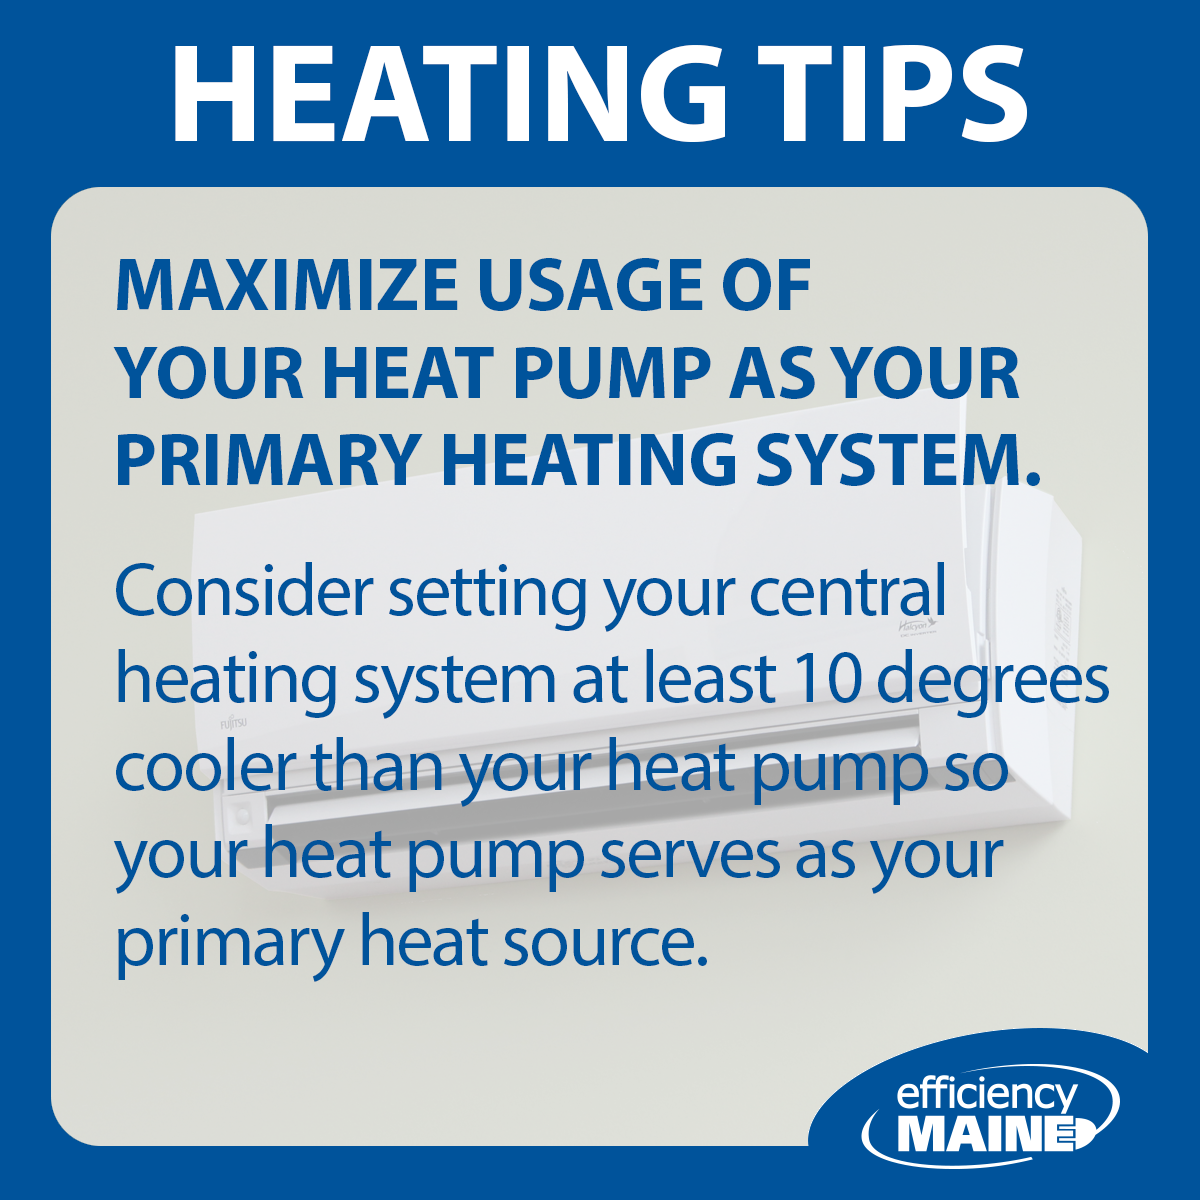 Helpful Tips To Light Your Kitchen For Maximum Efficiency: Maximize Usage Of Your Heat Pump As Your Primary Heating